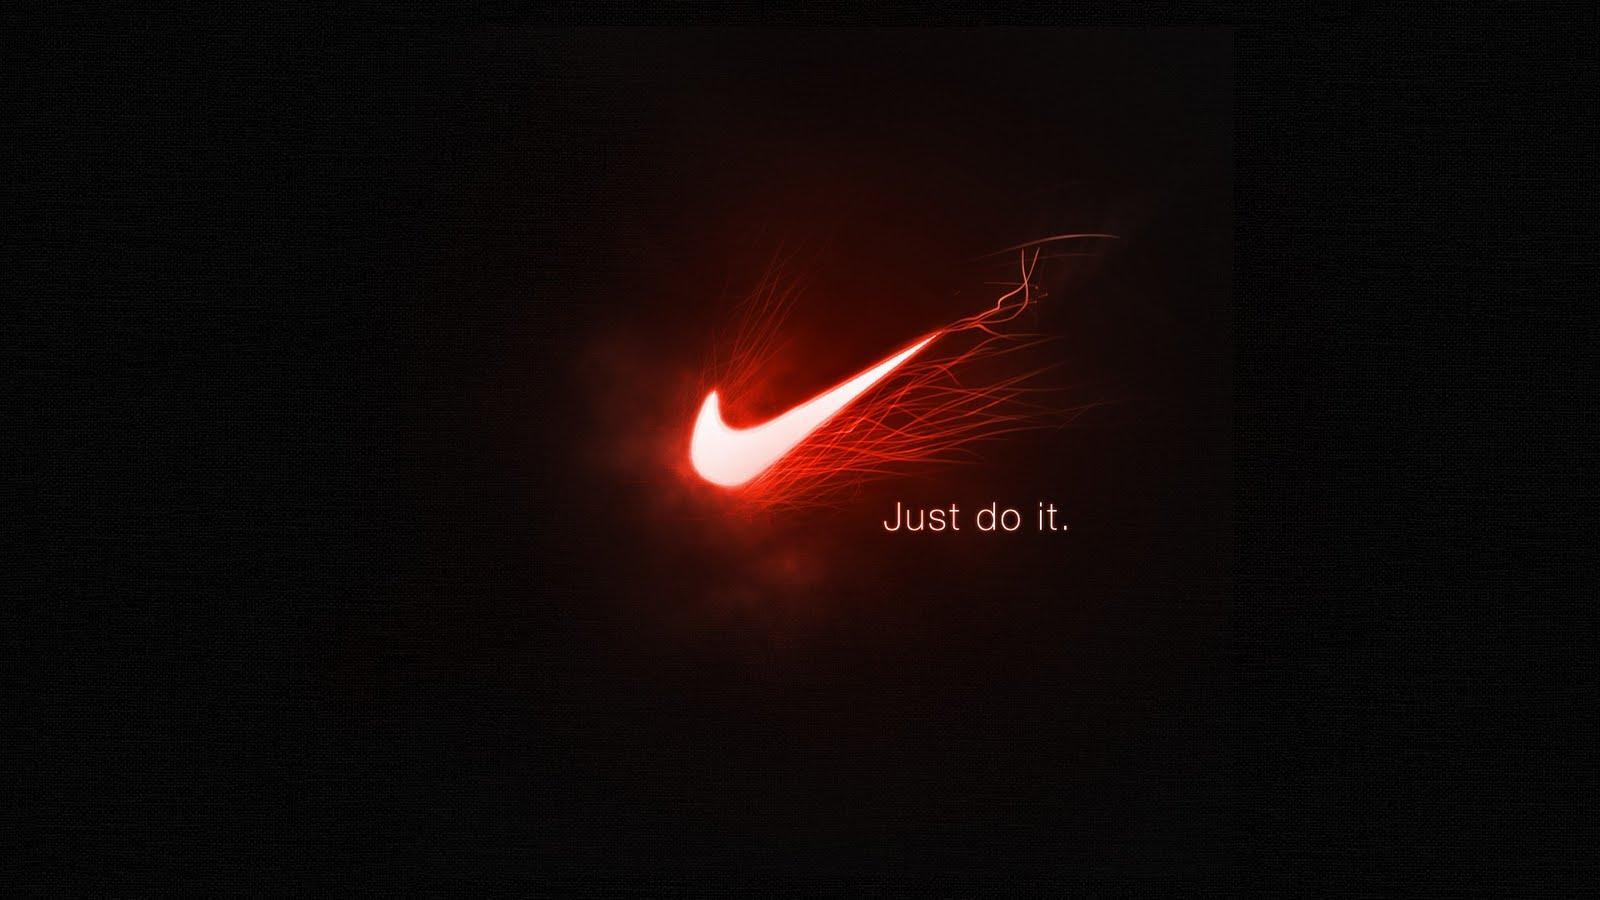 nike wallpapers cool white - photo #31